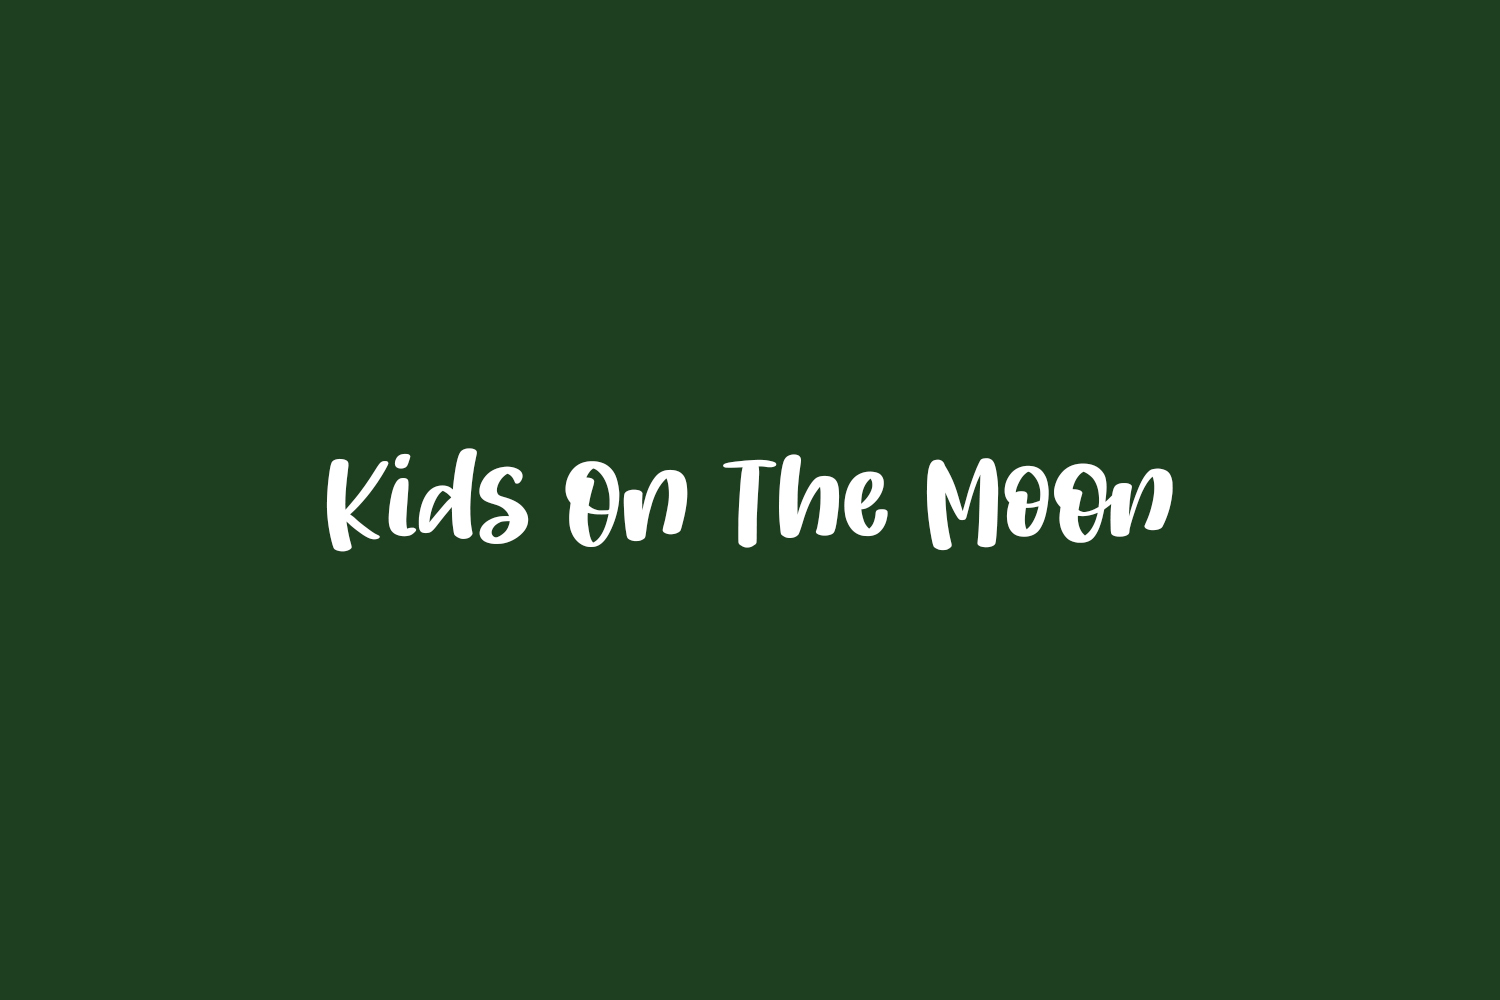 Kids On The Moon Free Font